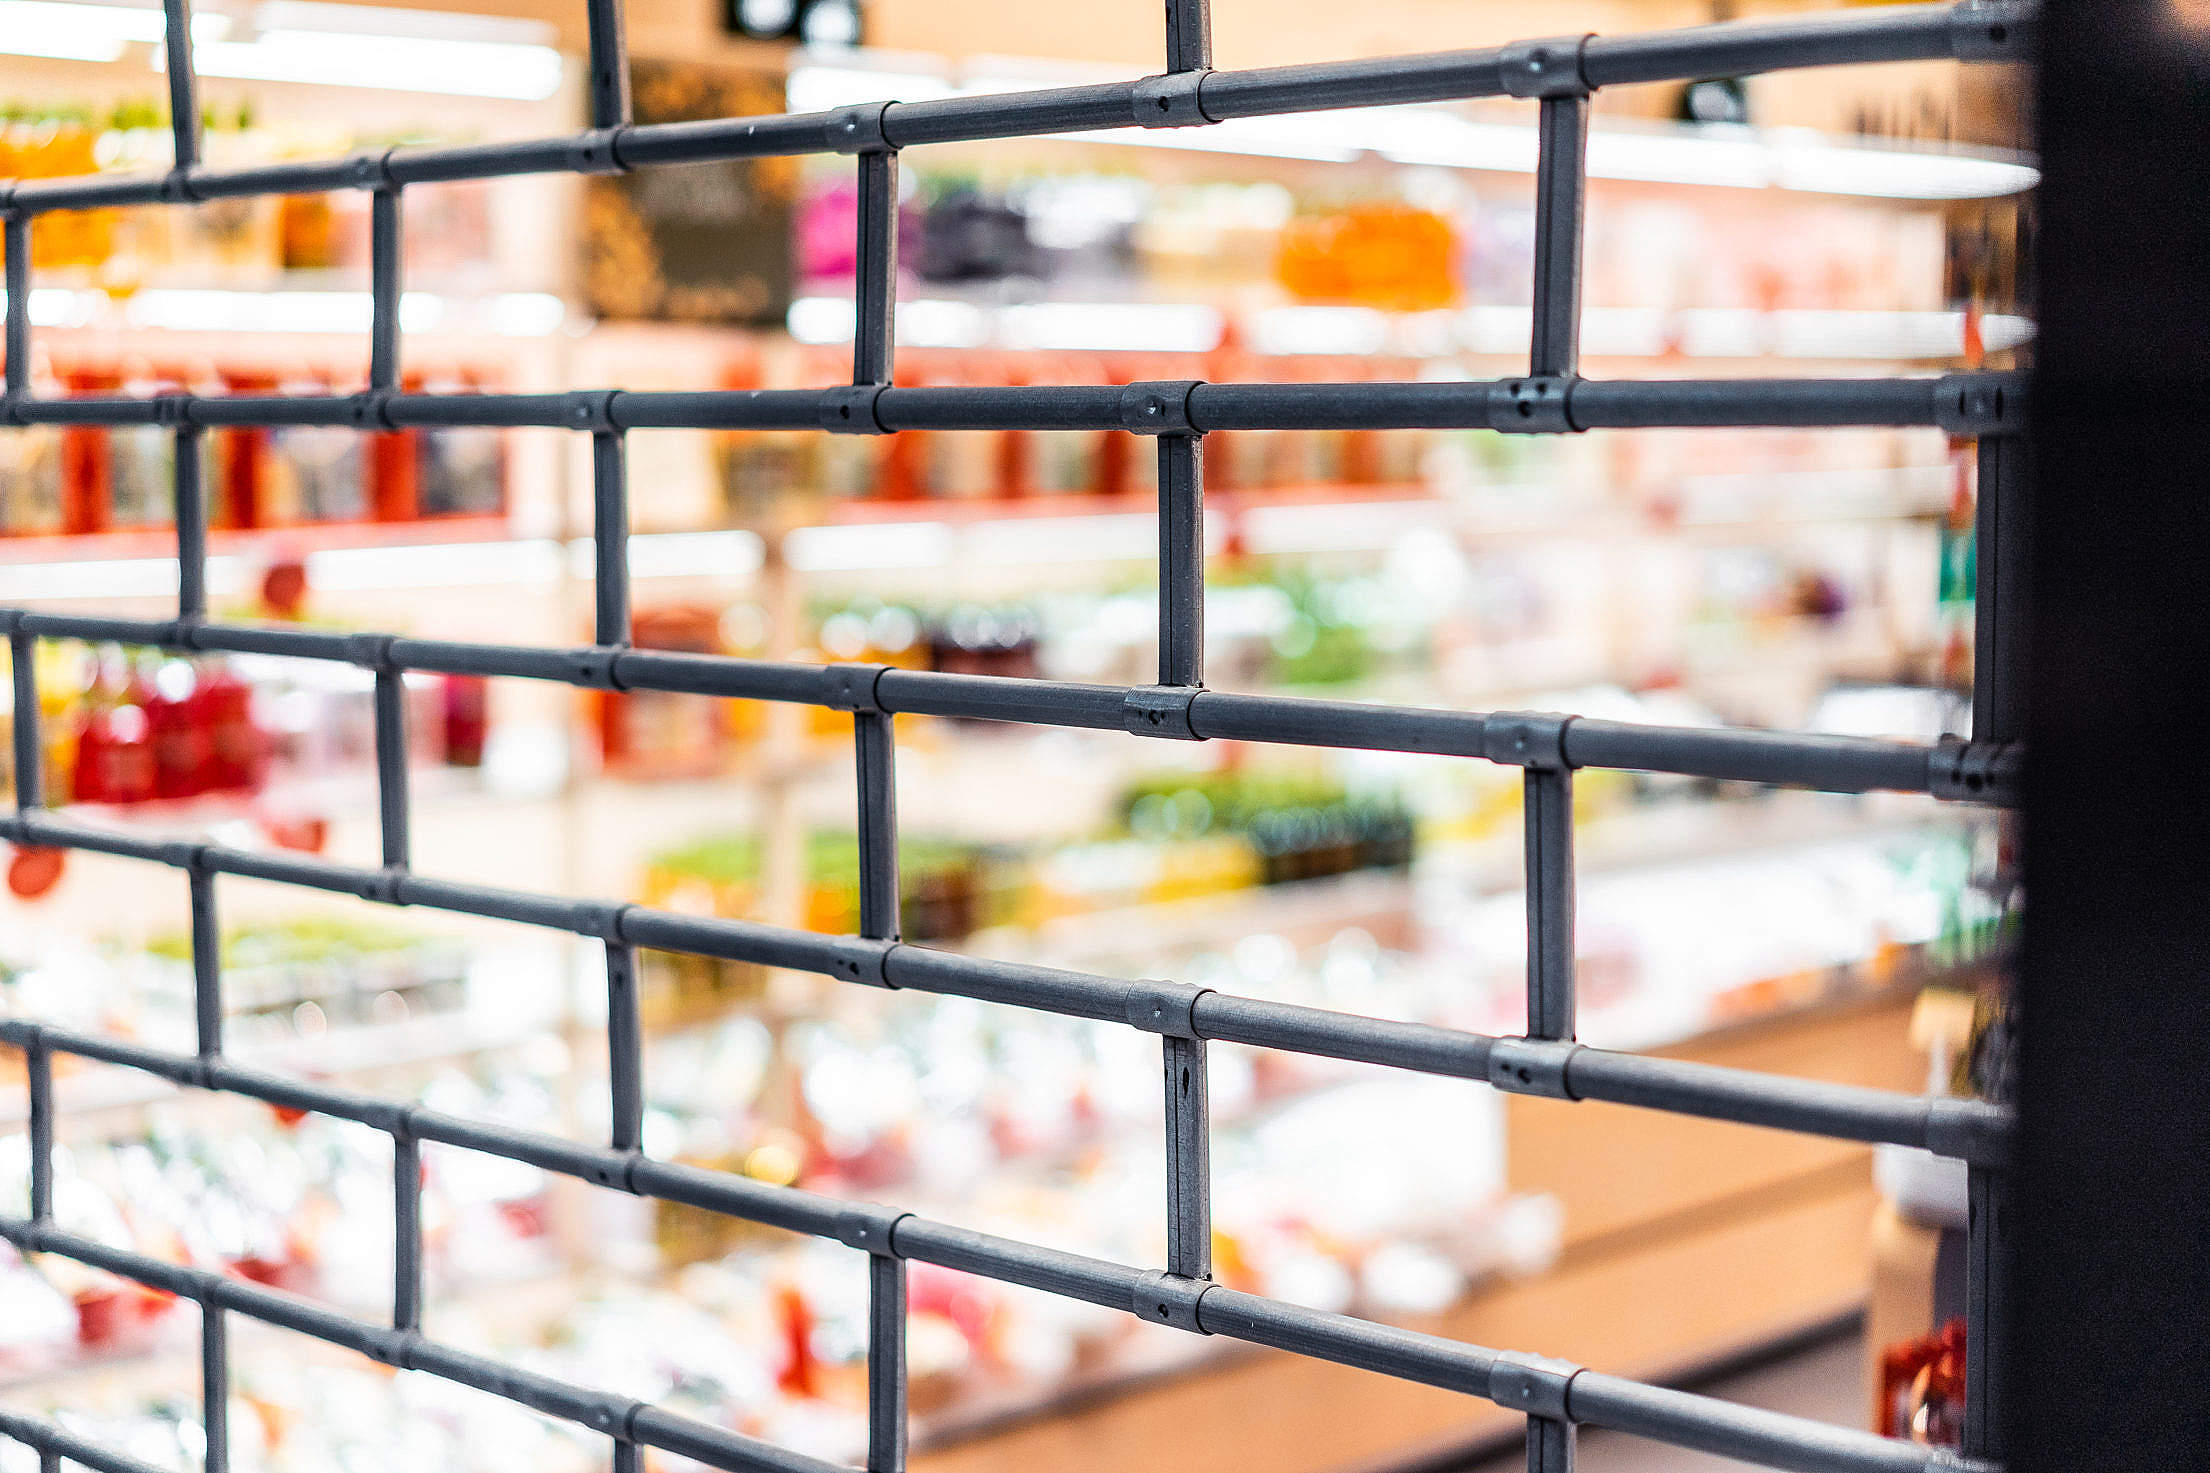 Closed Retail Store Security Free Stock Photo